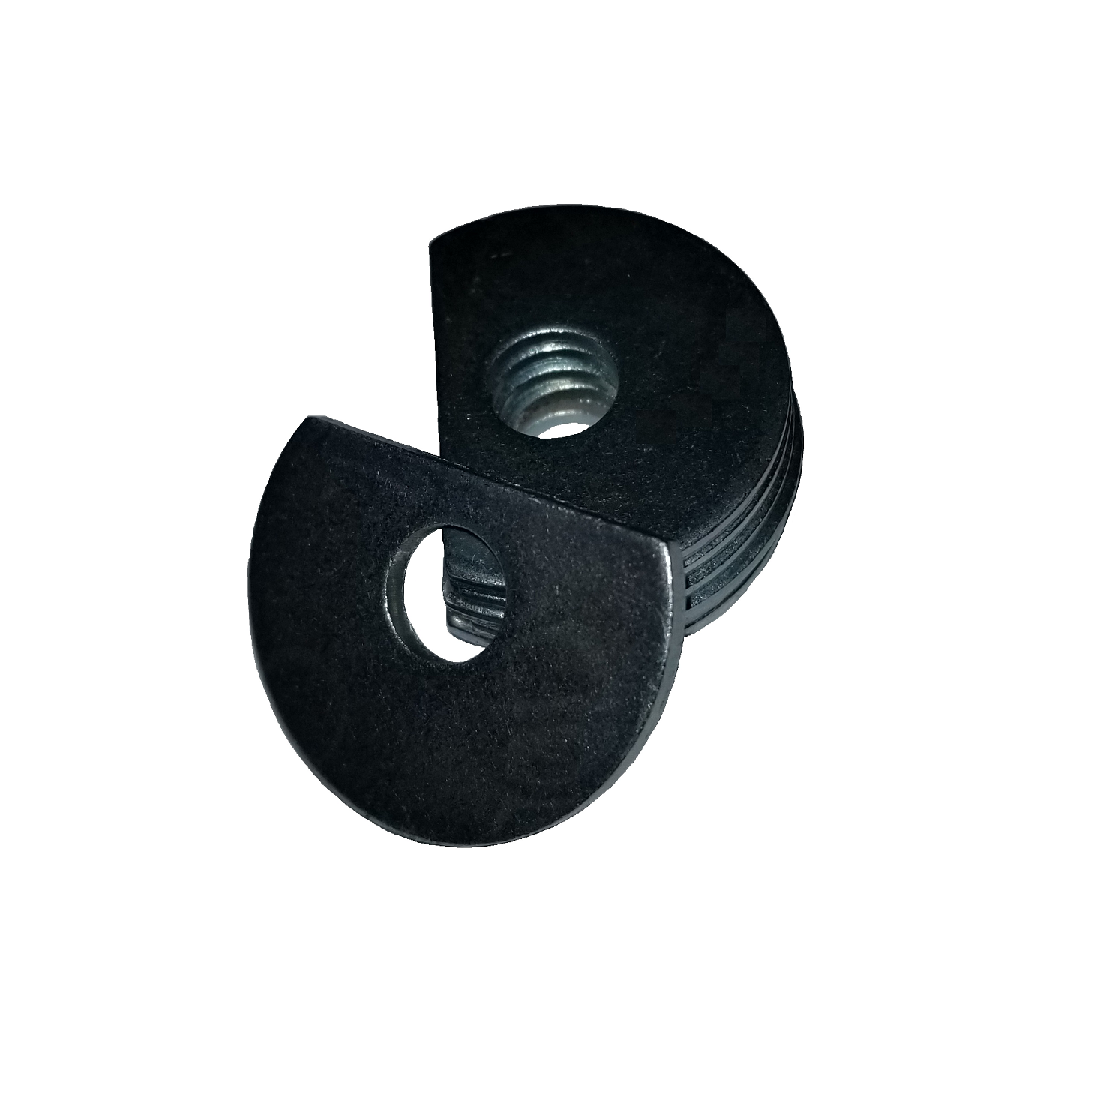 Clipped OD Washer - 0.703 ID, 1.312 OD, 0.134 Thick, Spring Steel - Hard, Zinc & Yellow